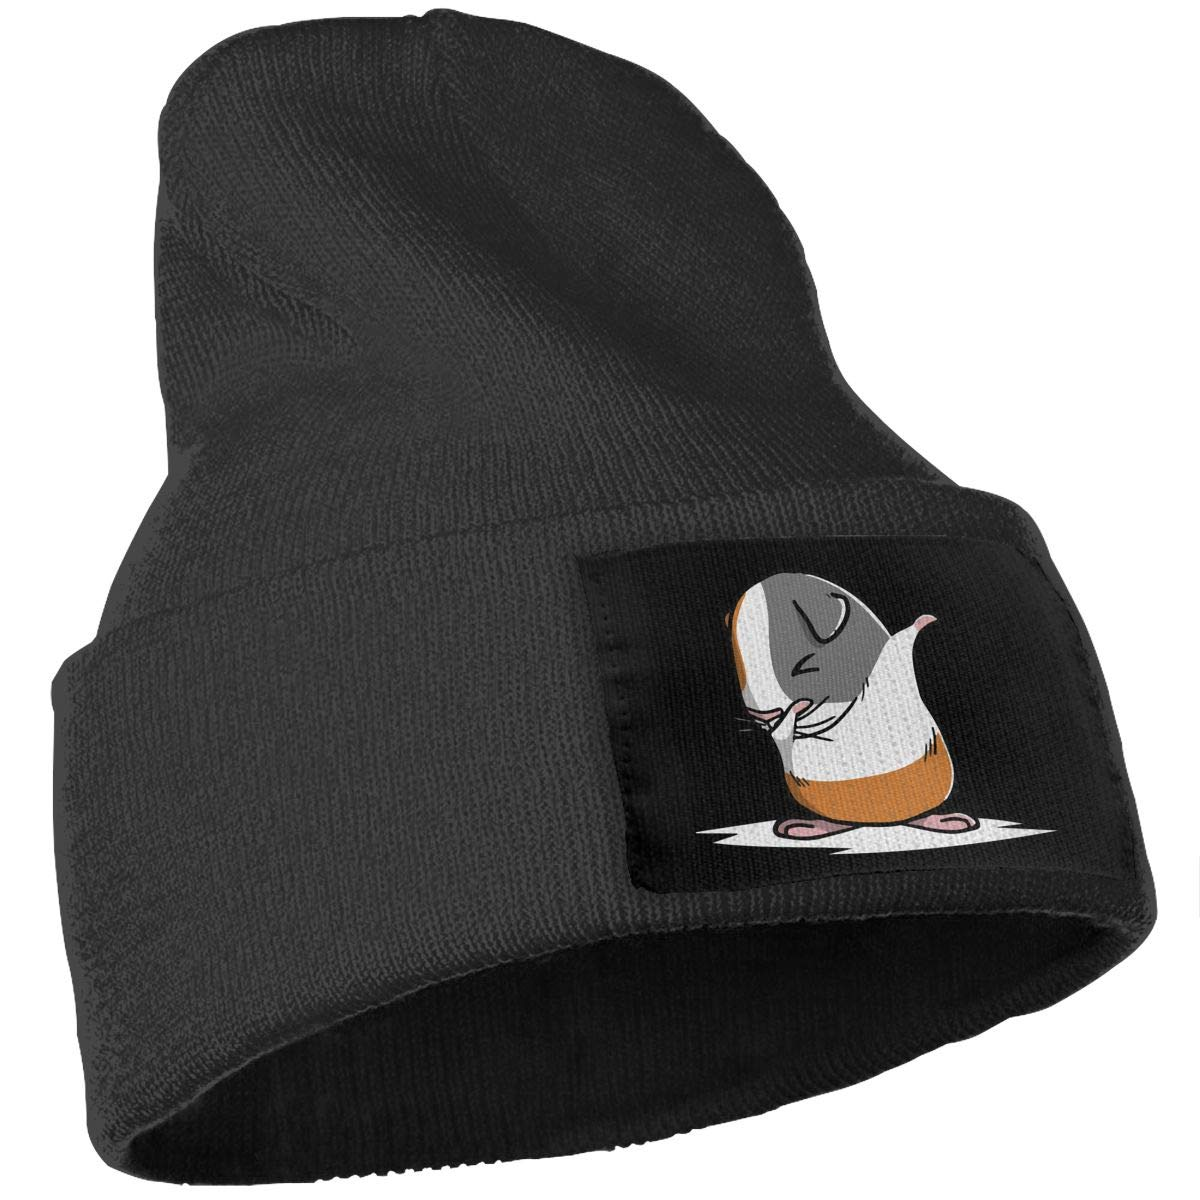 Unisex Dabbing Guinea Pig Outdoor Stretch Knit Beanies Hat Soft Winter Knit Caps